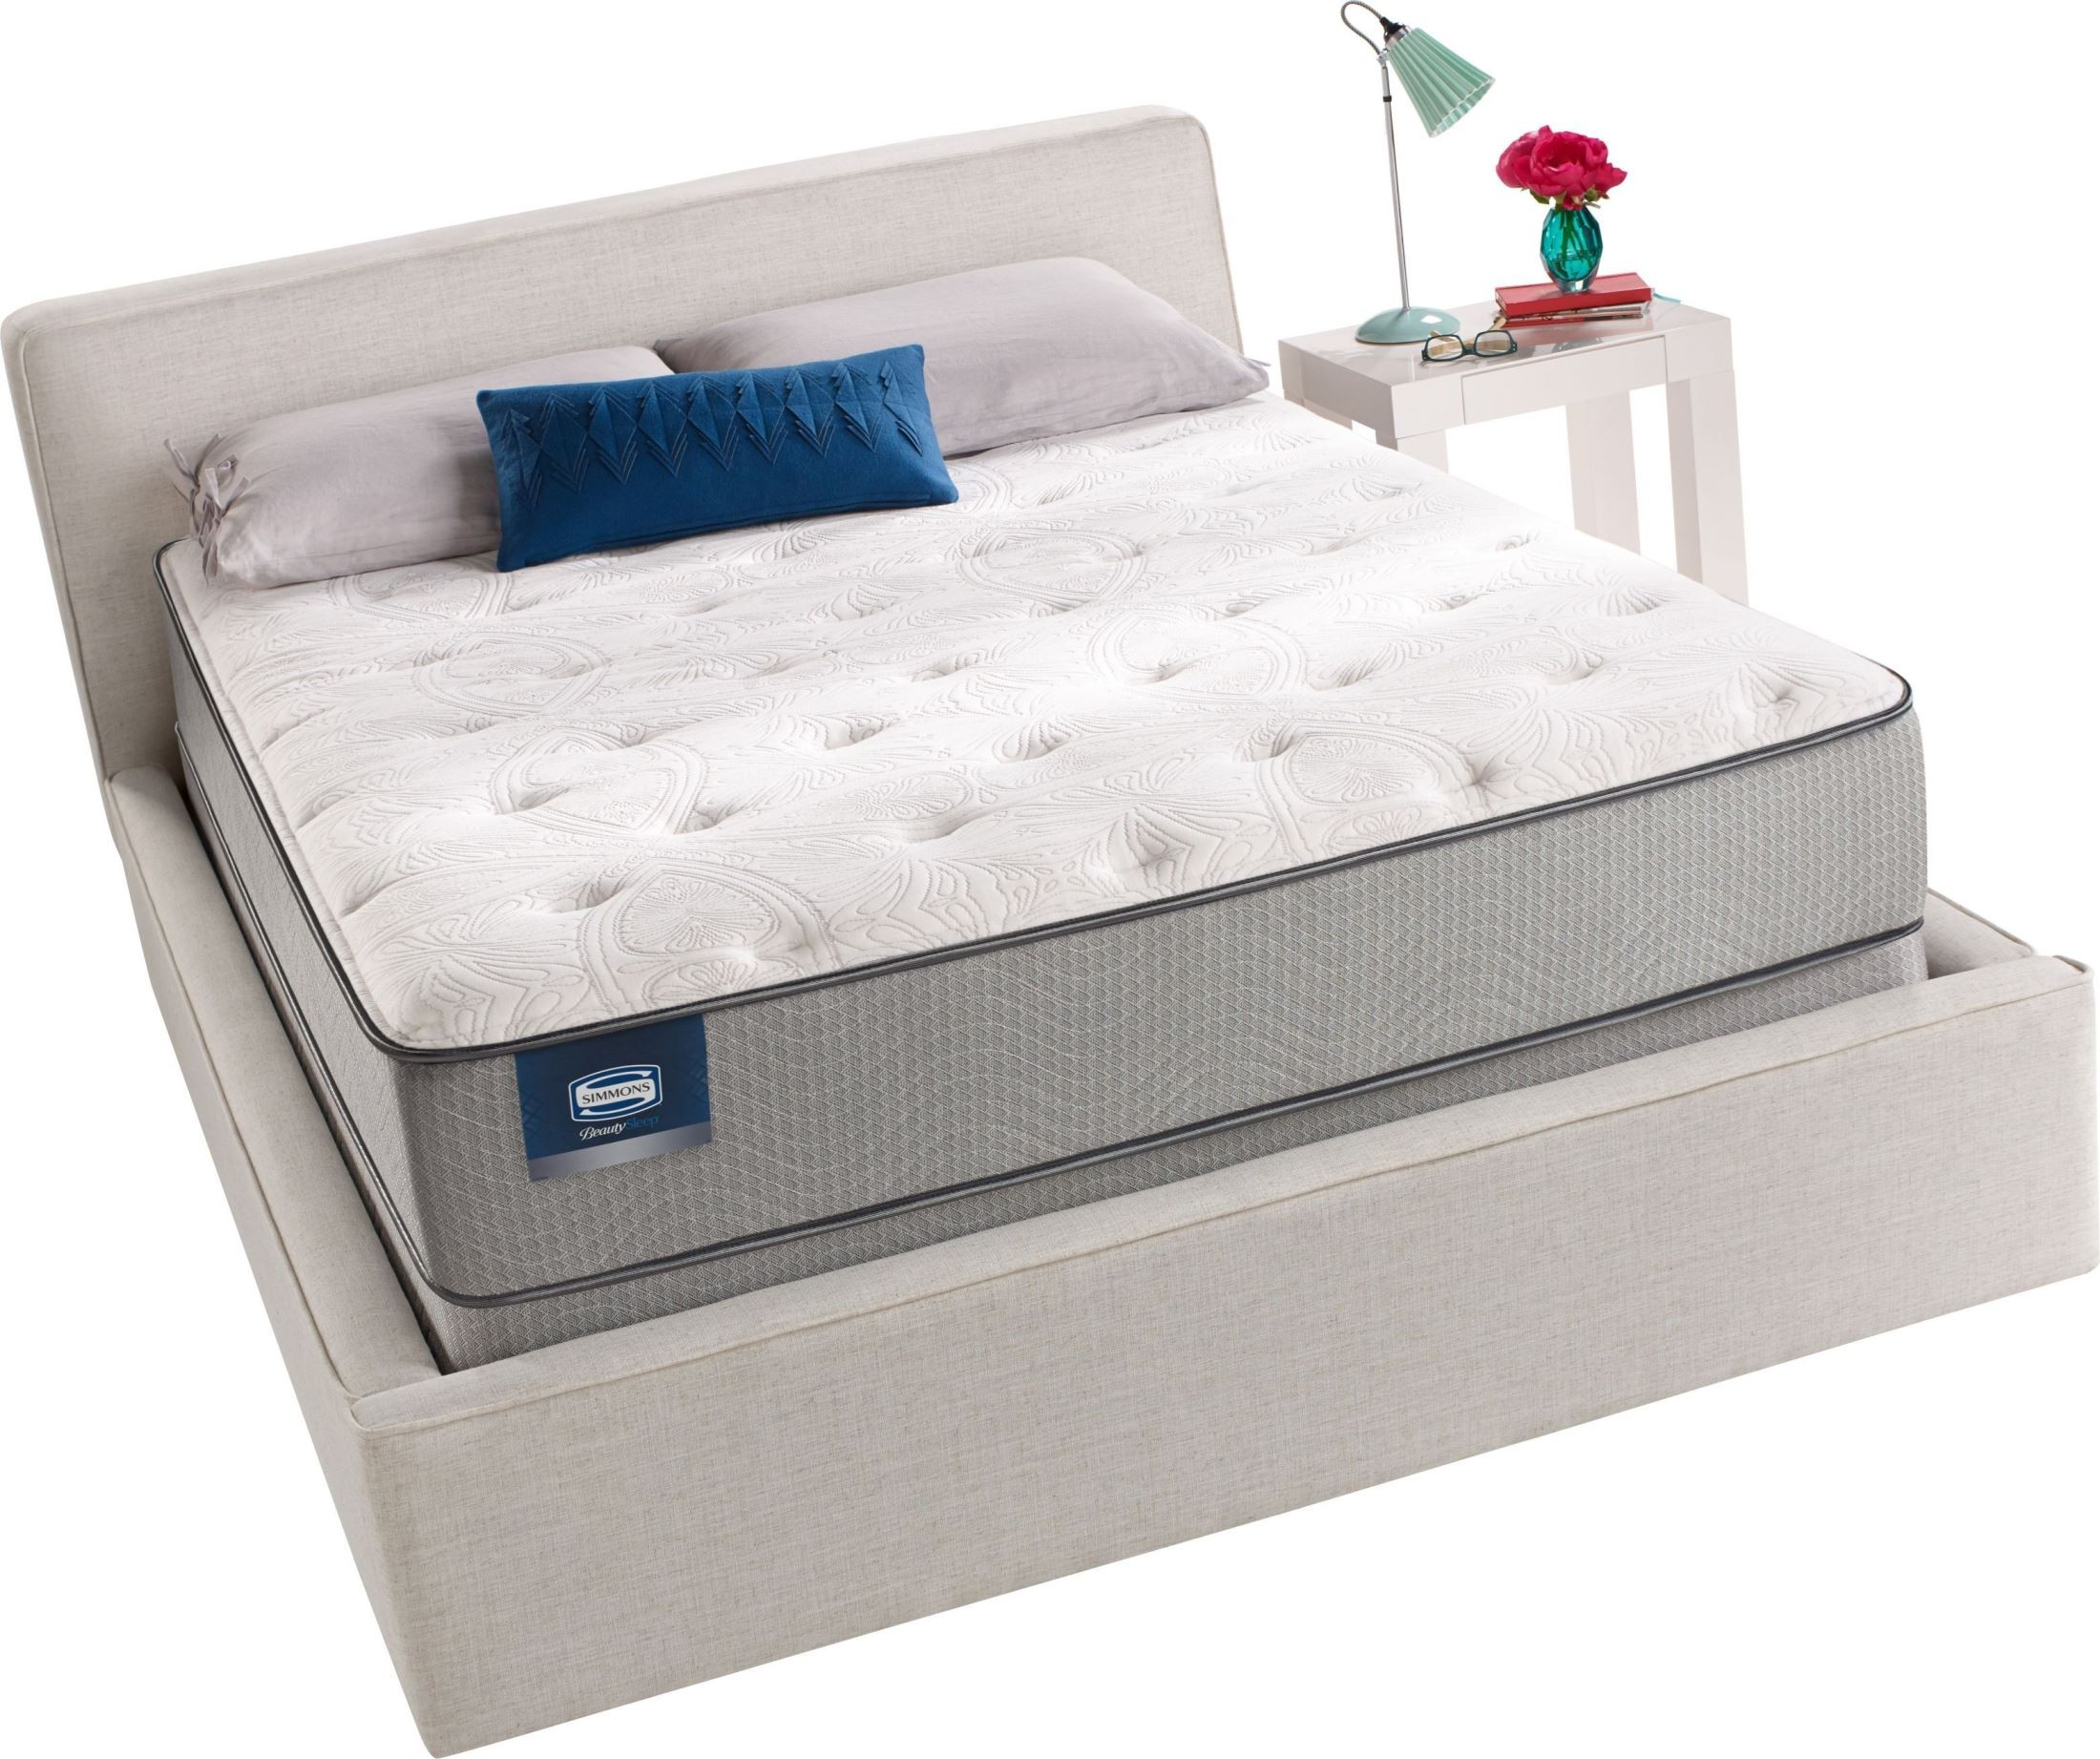 BeautySleep Areca Palm Twin Firm Mattress BEAUTYSLEEP